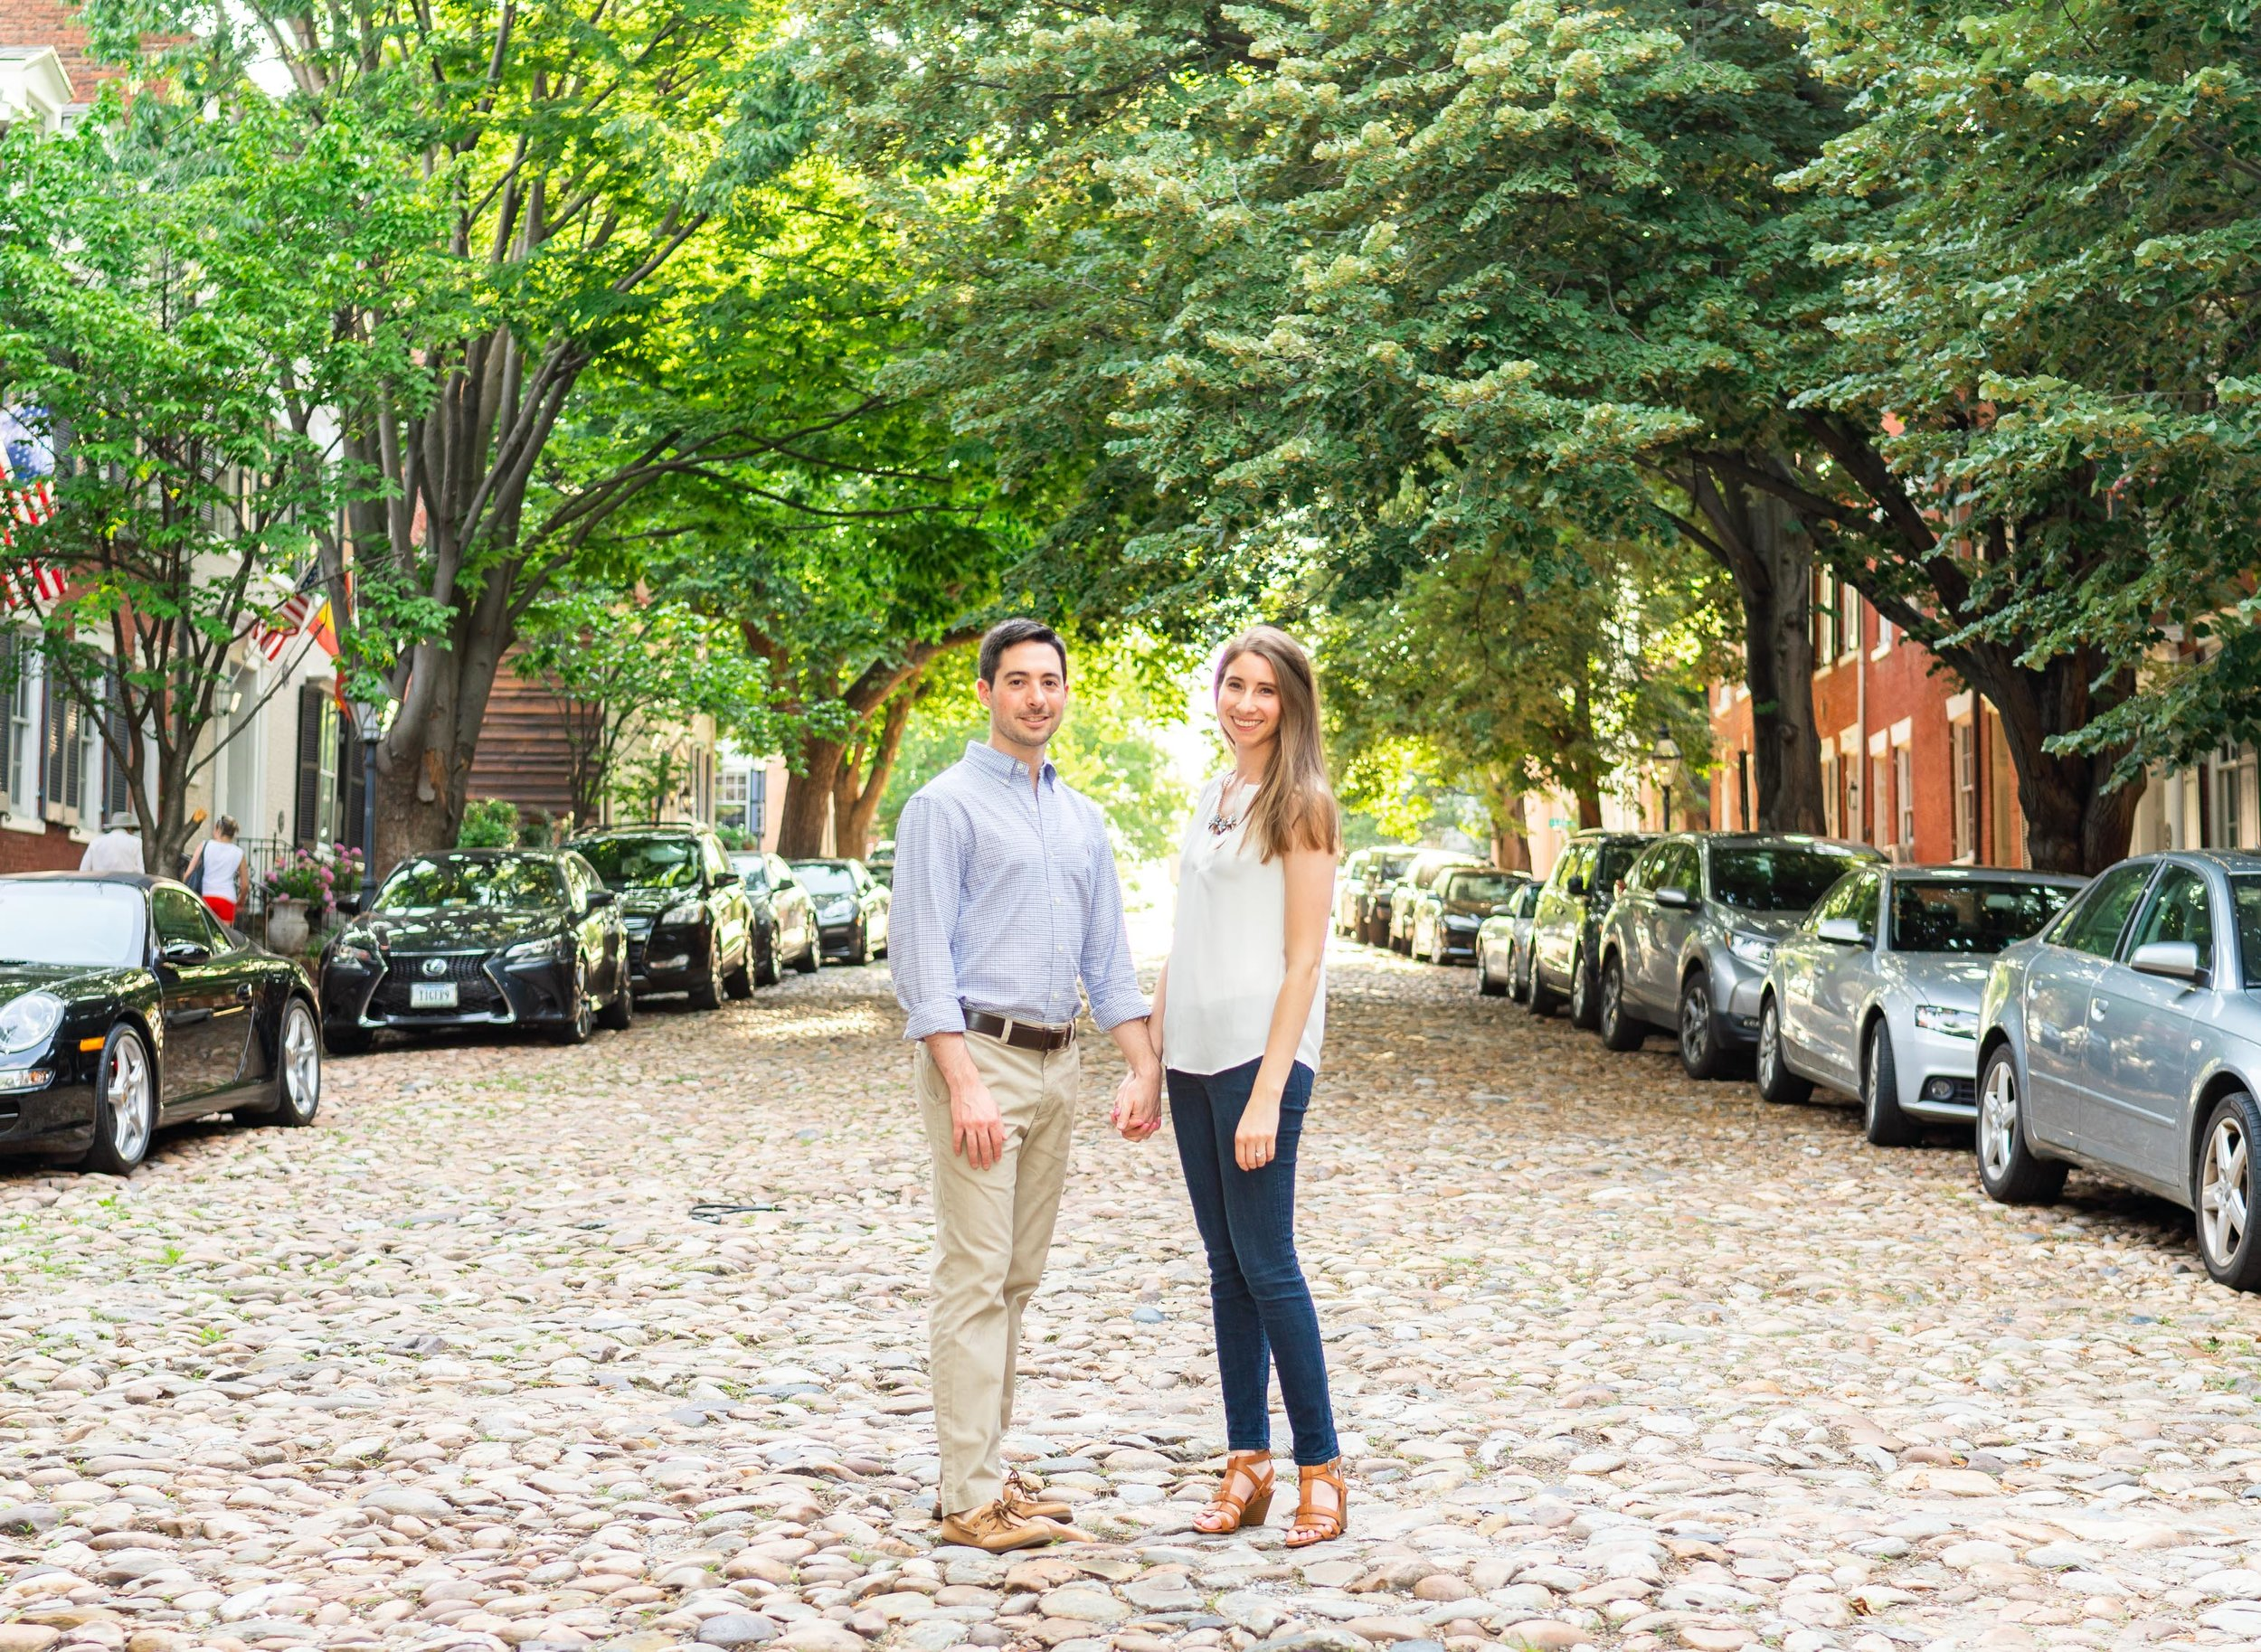 Cobblestone street in Old Town Alexandria at golden hour sunset